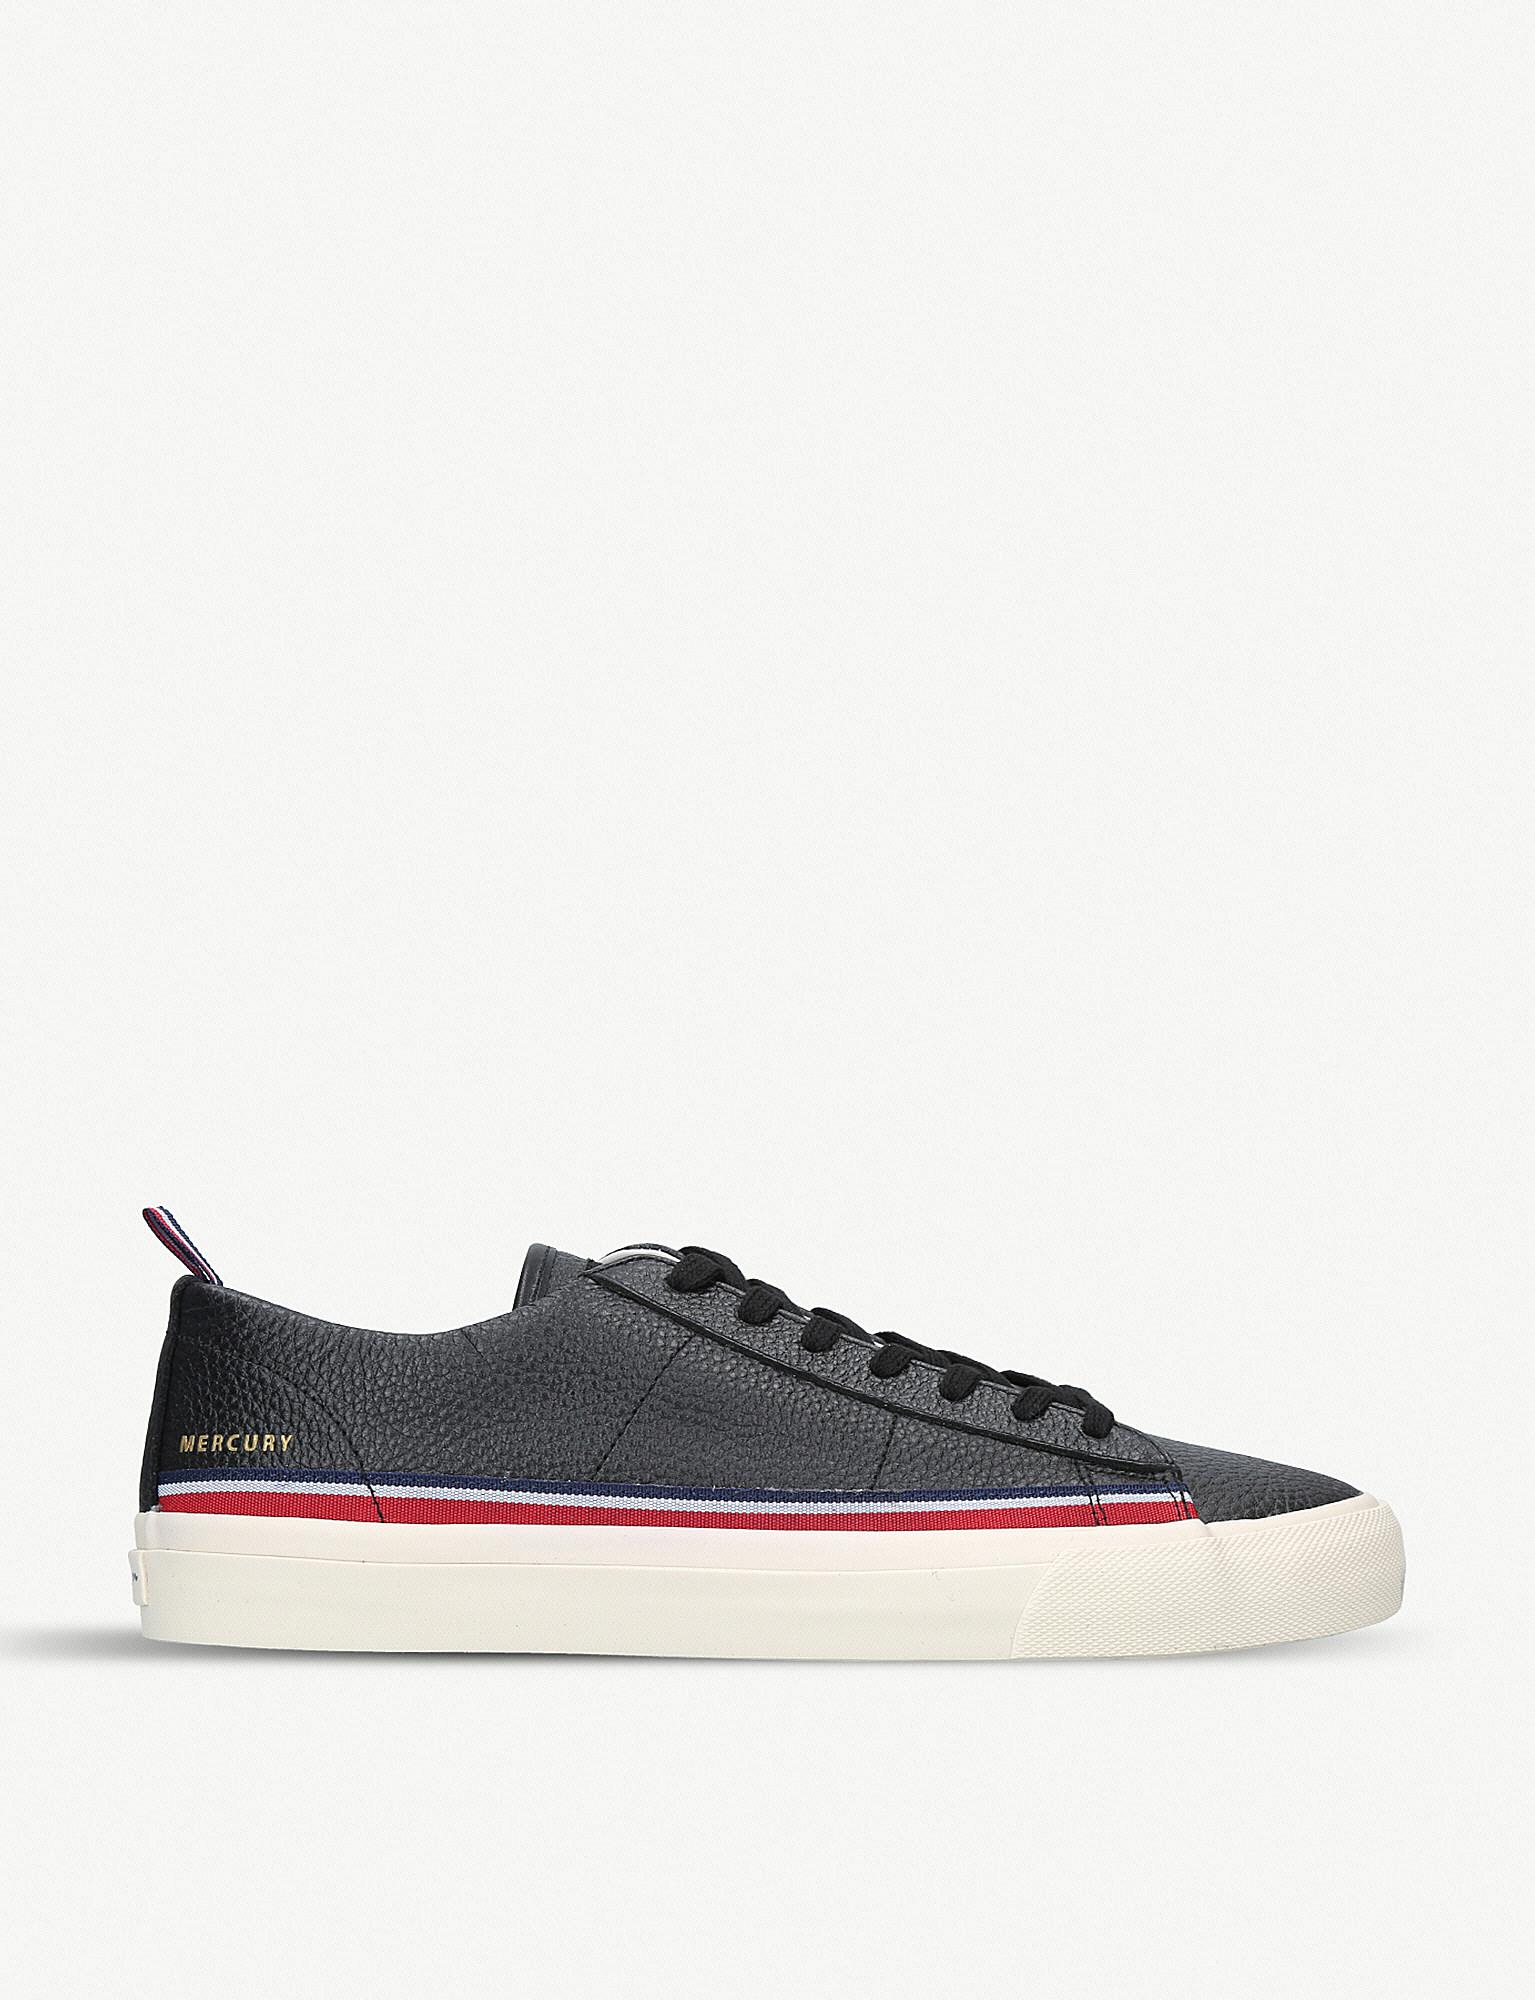 b2c950125294b Champion Mercury Low-top Leather Trainers in Black for Men - Lyst